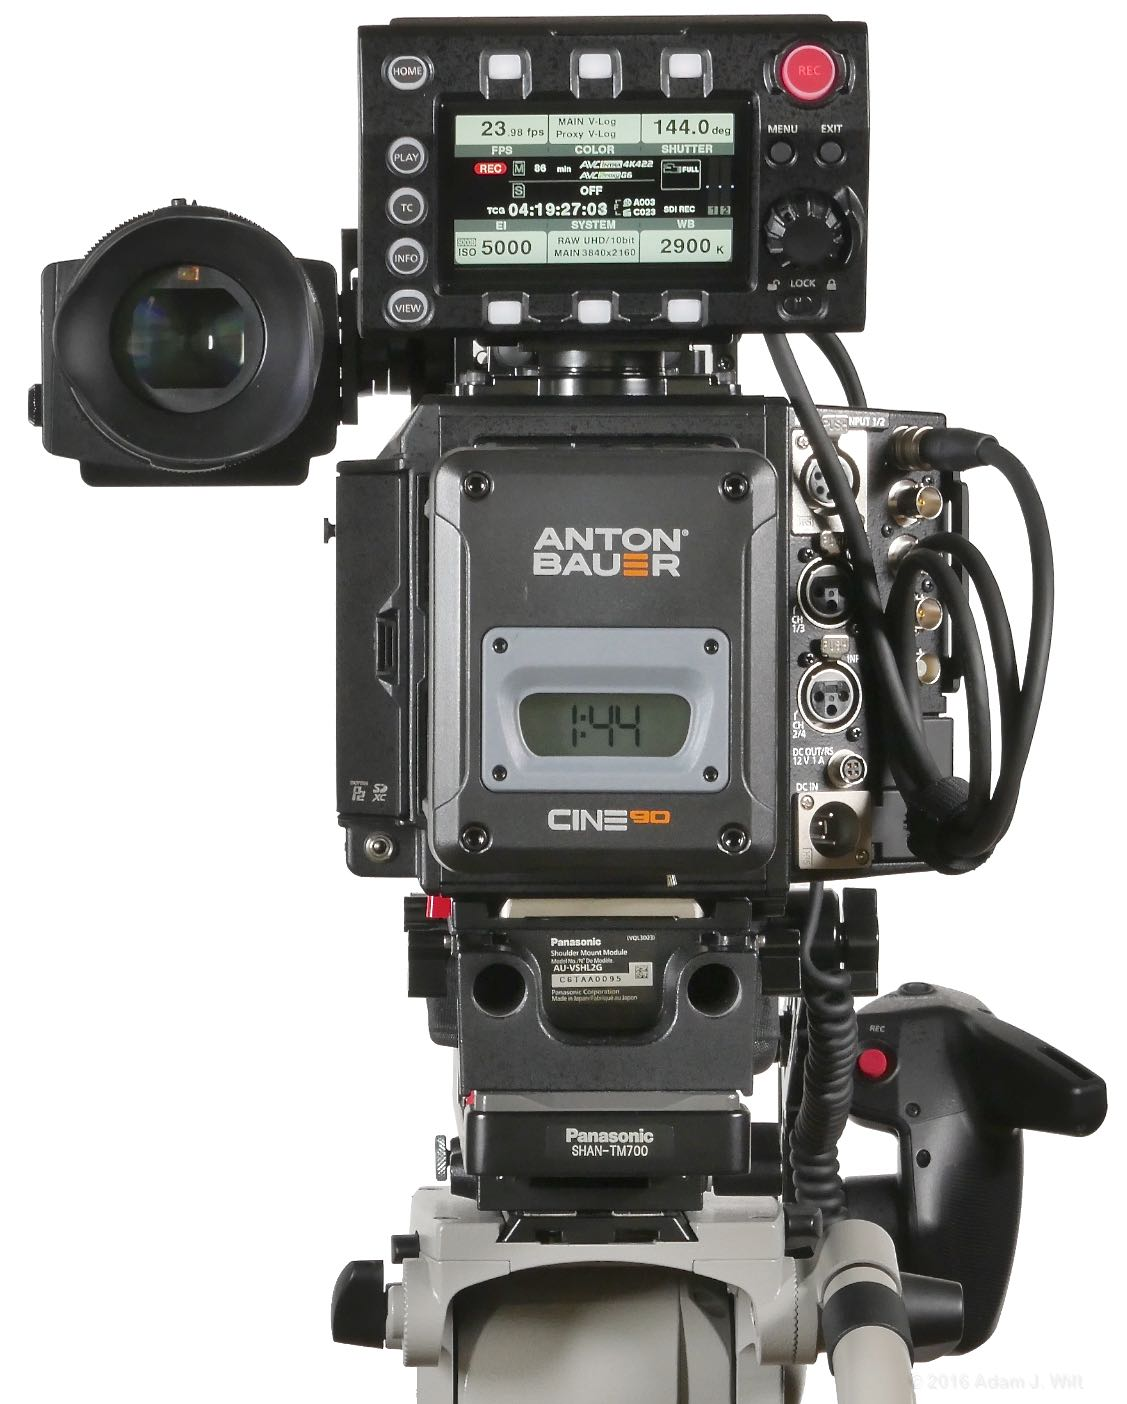 VariCam LT rear view with Cine90 battery